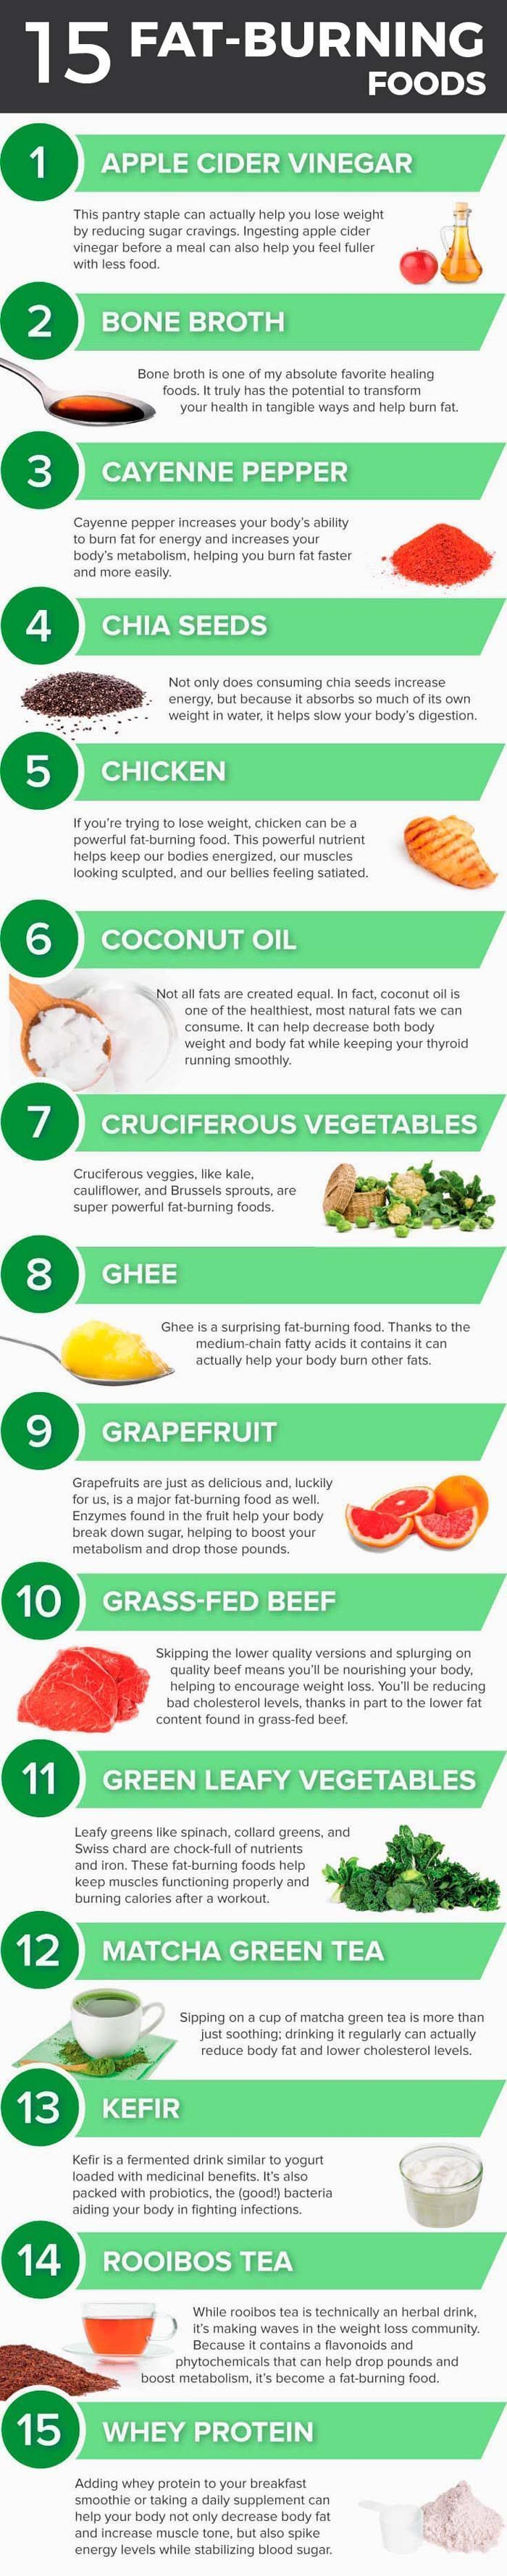 19 best hacking images on pinterest health medicine and physical 11 of the best fat burning foods for 2017 fandeluxe Images